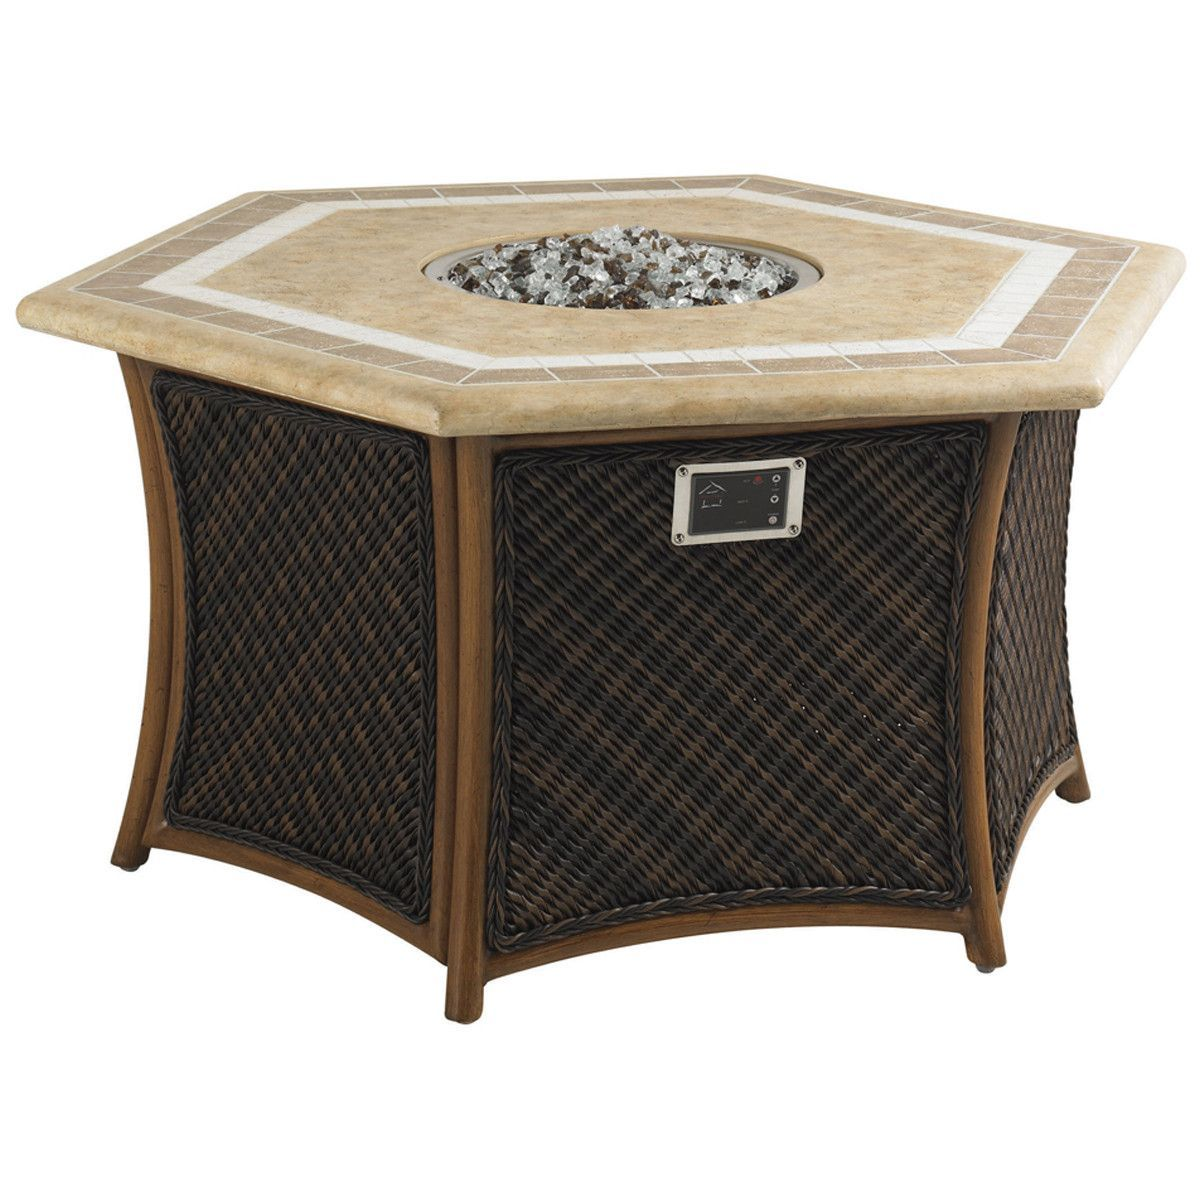 Tommy Bahama Island Estate Veranda Hexagonal Fire Pit